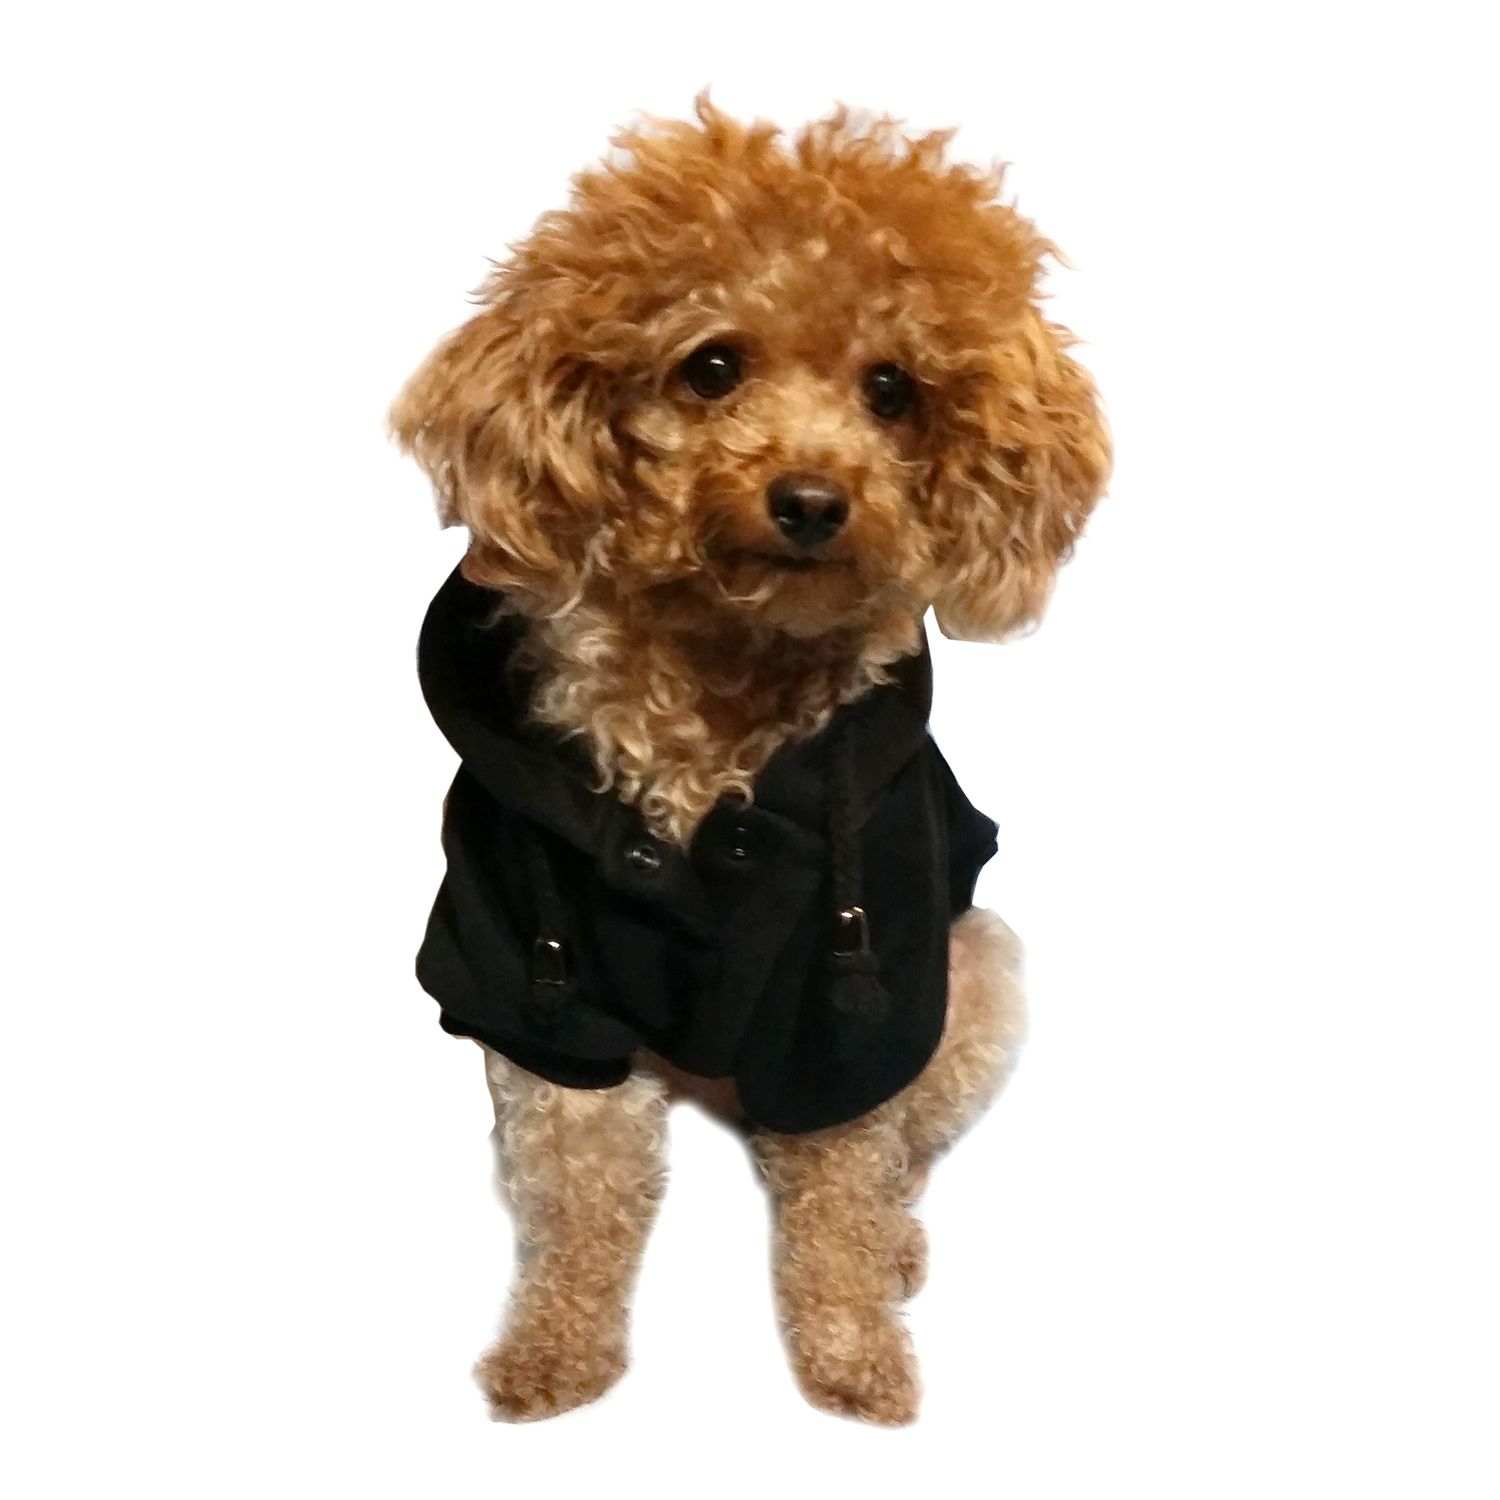 Black Dog Apparel Cold Weather Coat Pullover Sweatshirt For Dog Puppy - Small